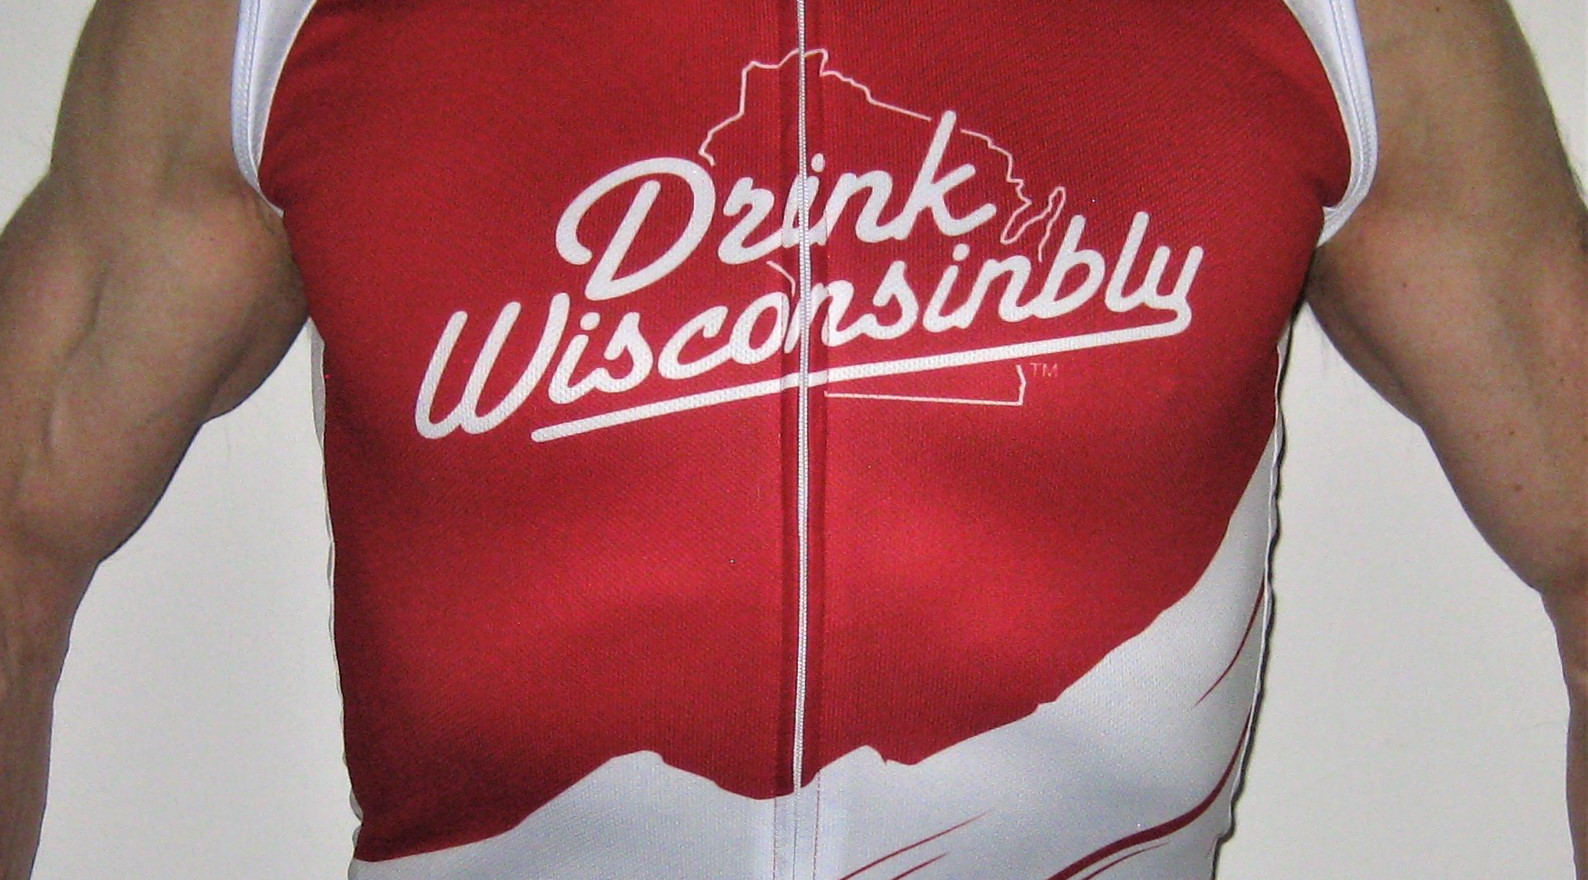 Drink Wisconsinbly Cycling Jersey | Drink Wisconsinbly Apparel | custom jersey for Tour de Cure | Custom jersey for JDRF Diabetes Foundation - Juvenile Diabetes Research Foundation